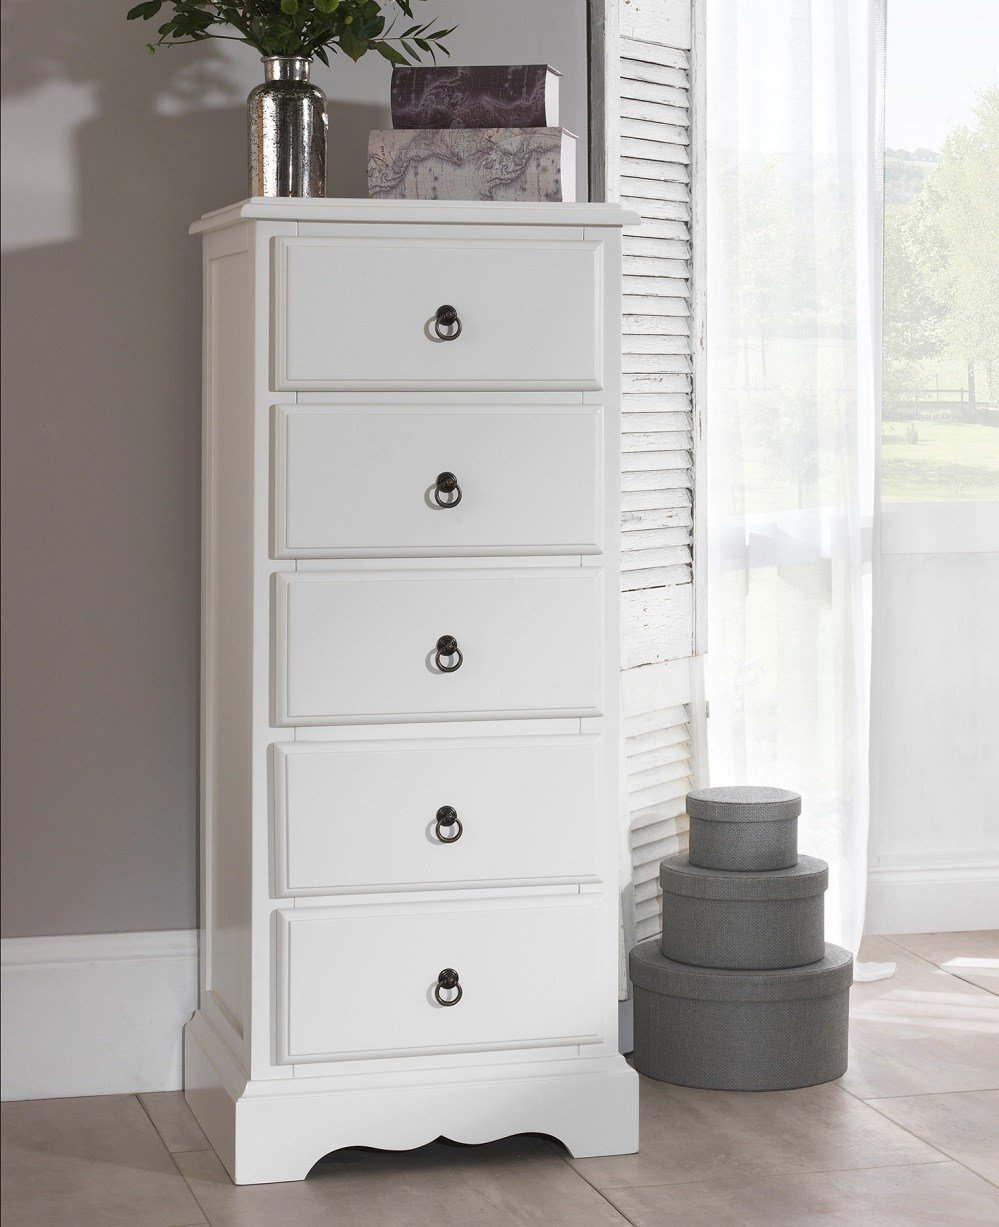 Best Romance White Bedroom Furniture Bedside Table Chest Of Drawers Bed Wardrobe Ebay With Pictures